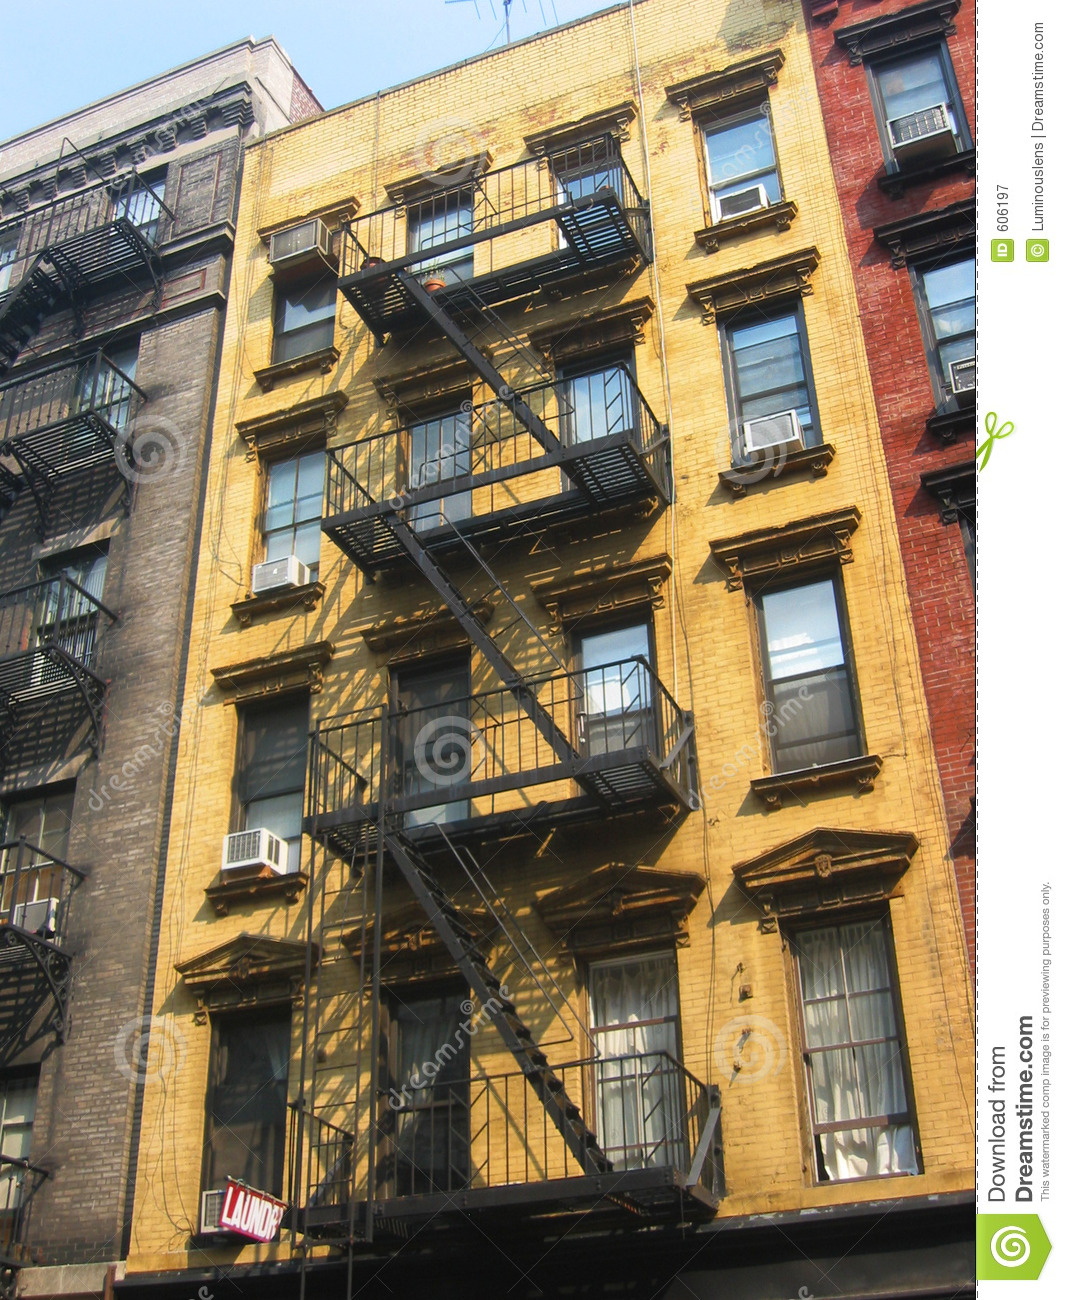 Apartement: New York City Apartment Buildings Stock Image